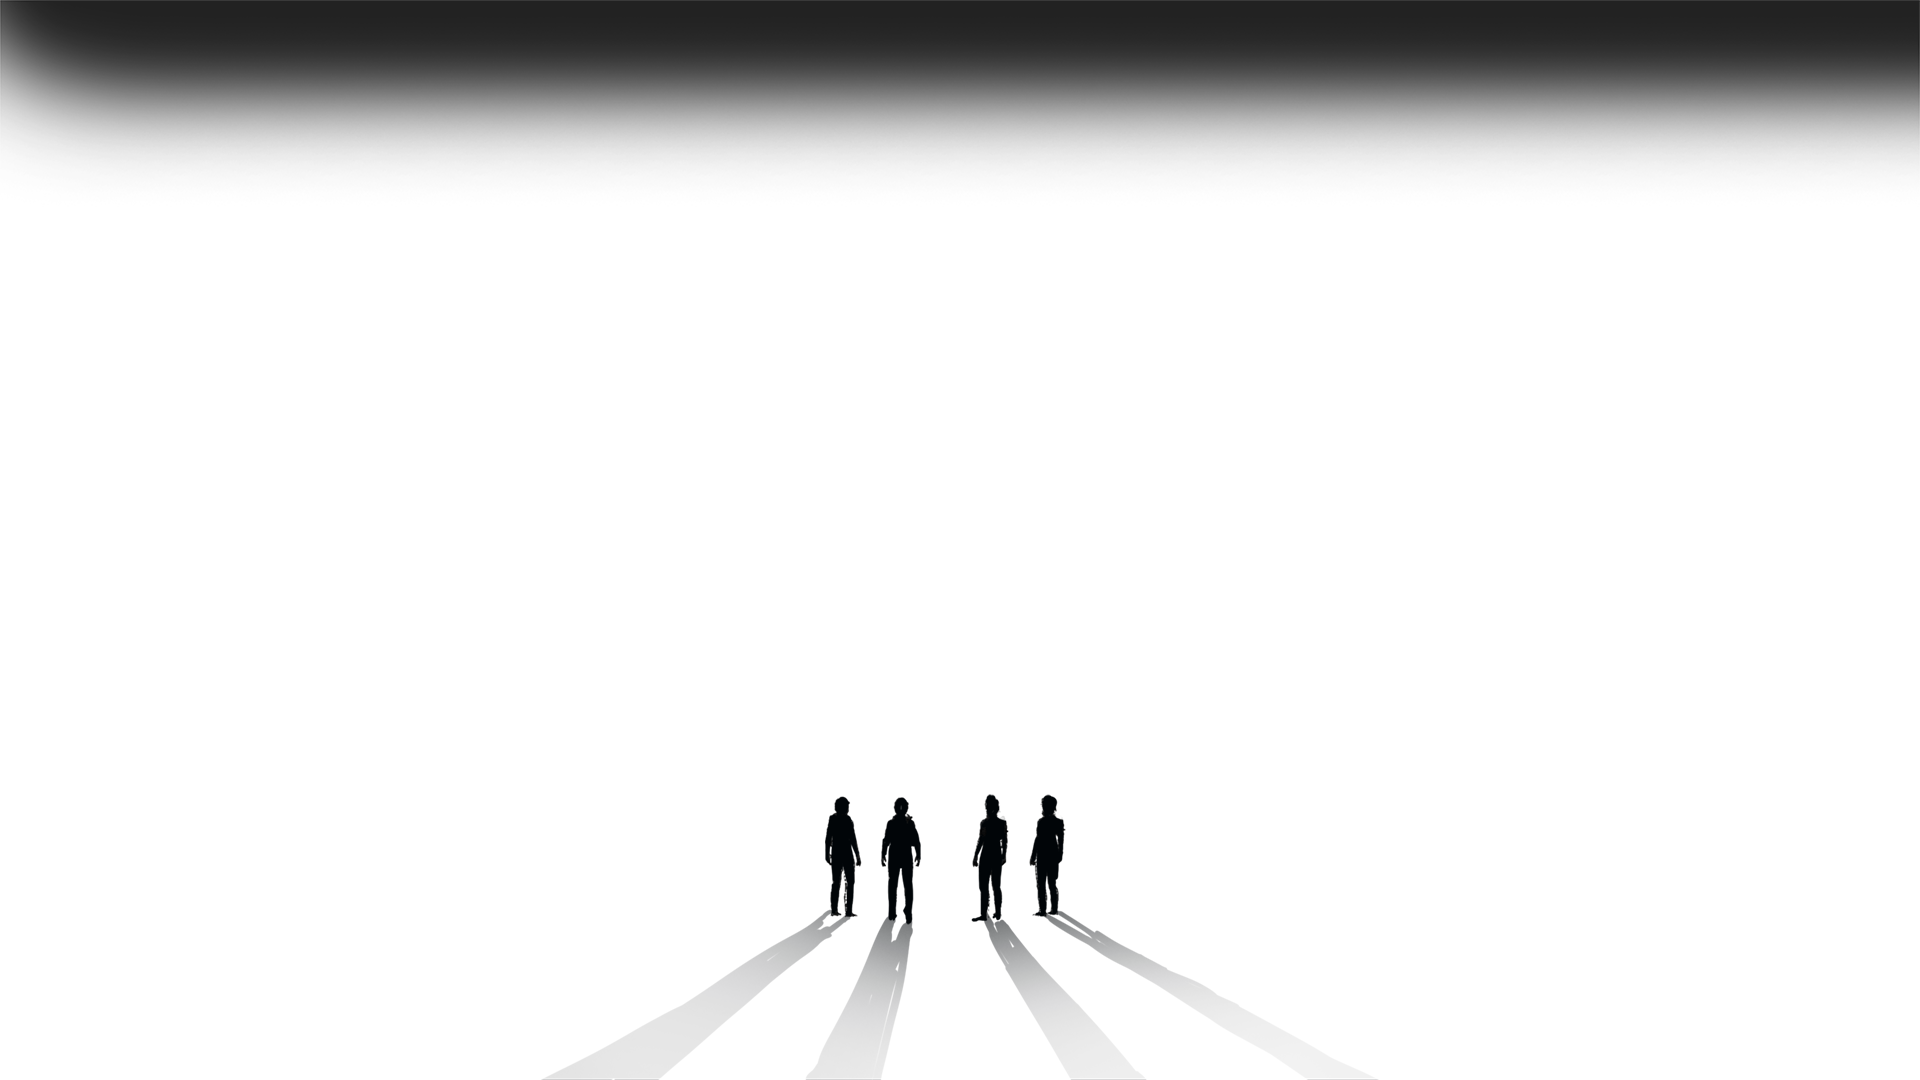 Four silhouette figures with shadows stretched walk toward light source